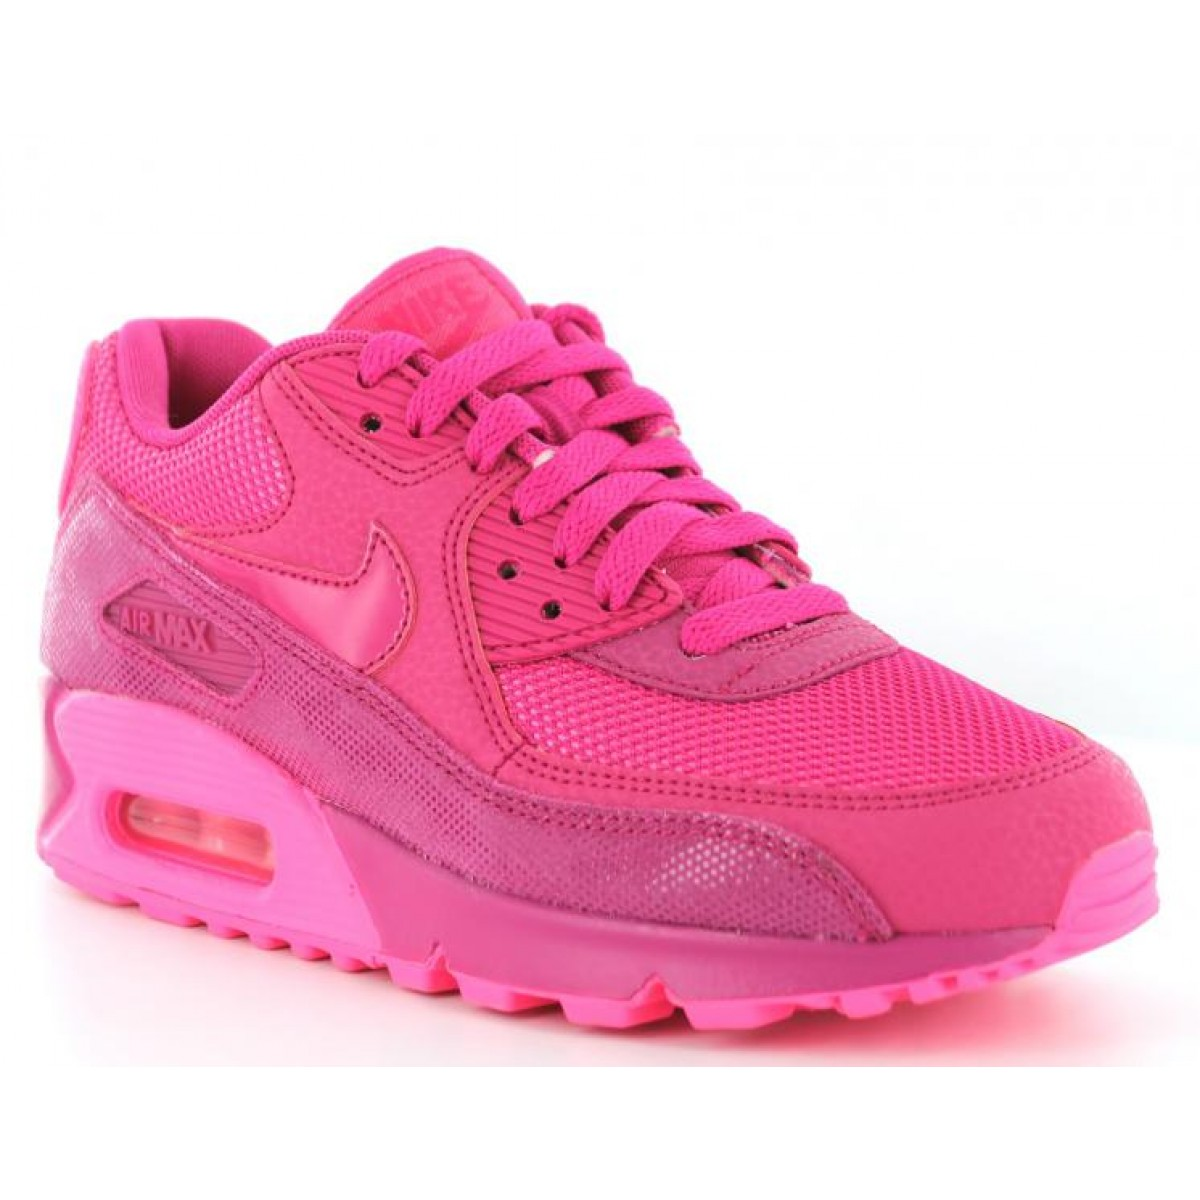 plus de photos c3d74 ba147 coupon rose nike femmes air max afc93 963d6